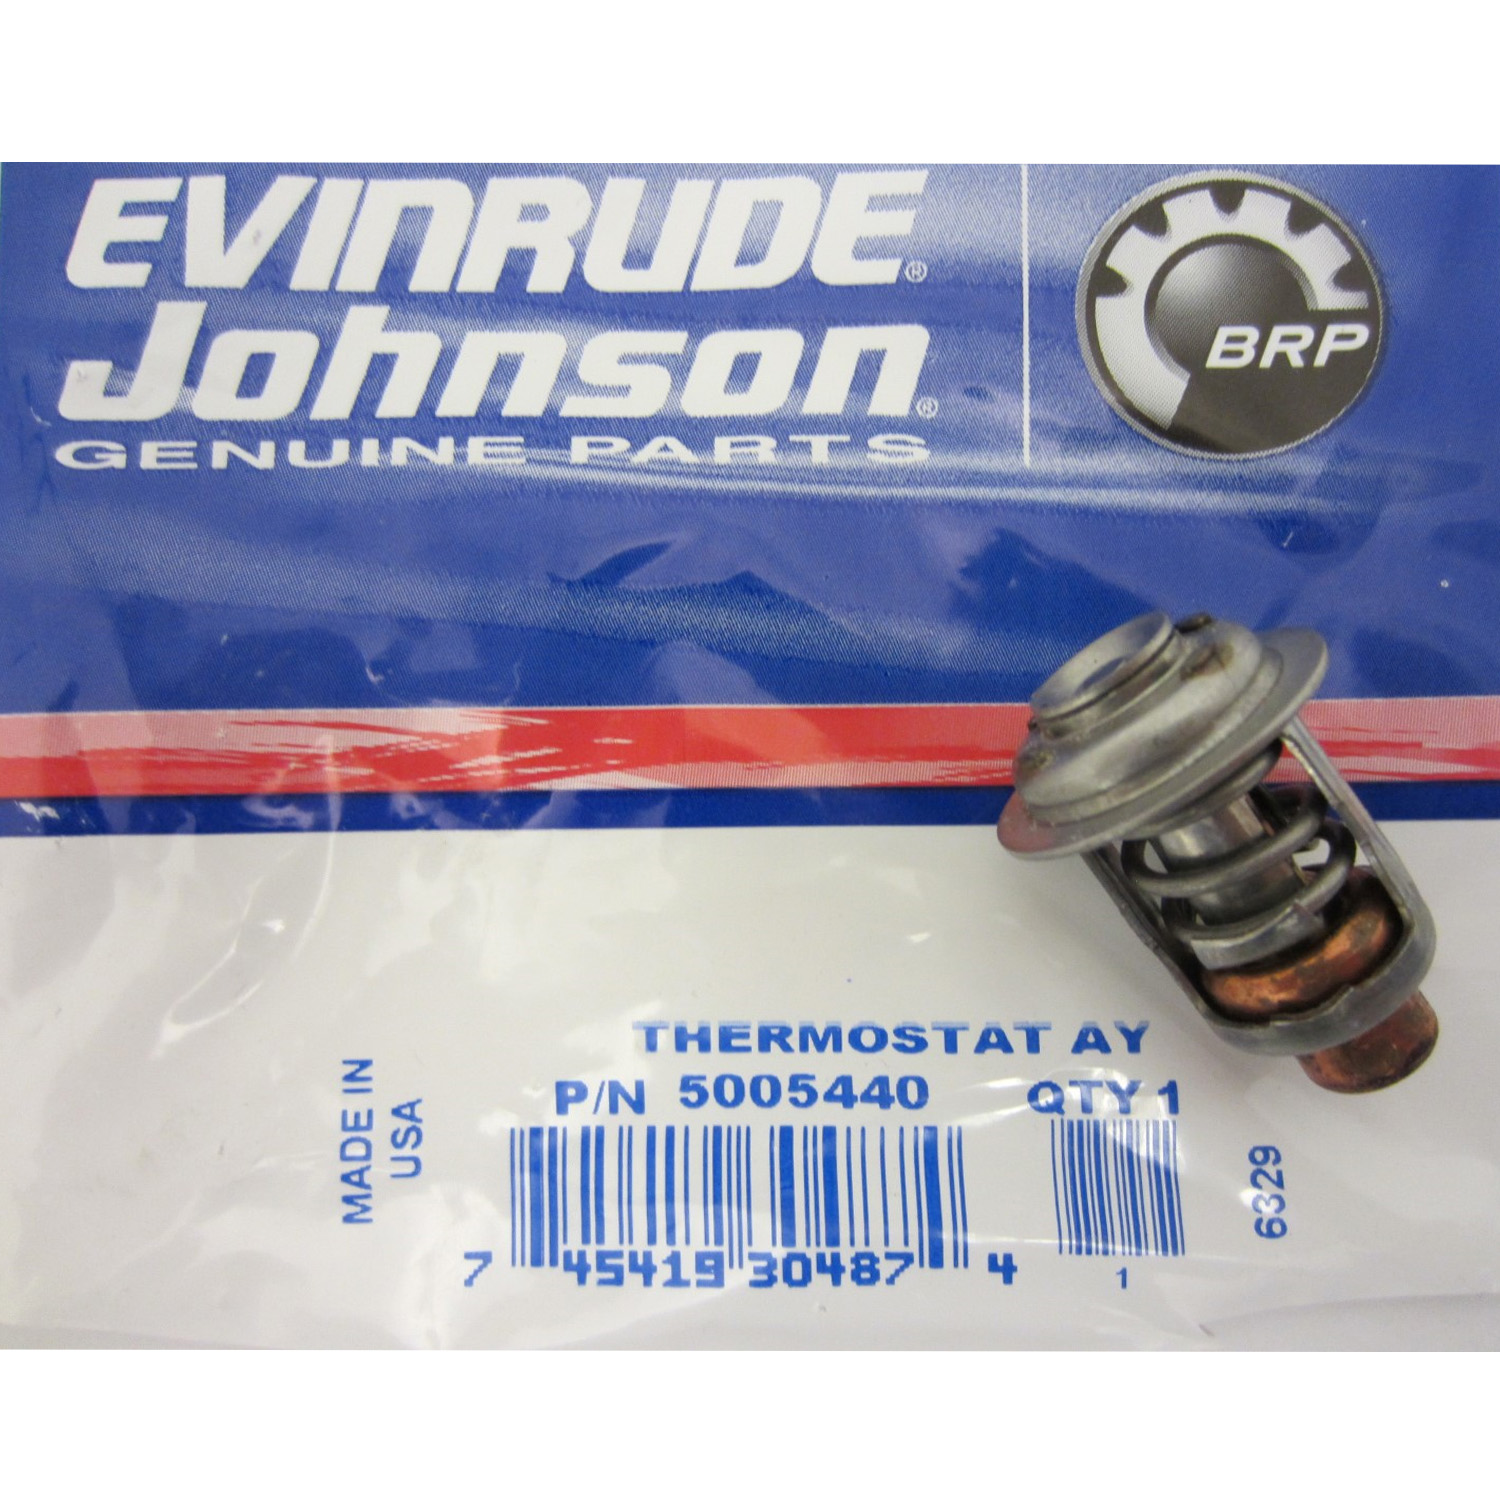 Evinrude Boat Outboard Engines And Components For Sale Ebay 1973 25 Wiring Harness Johnson New Oem Thermostat 5005440 378065 393659 434841